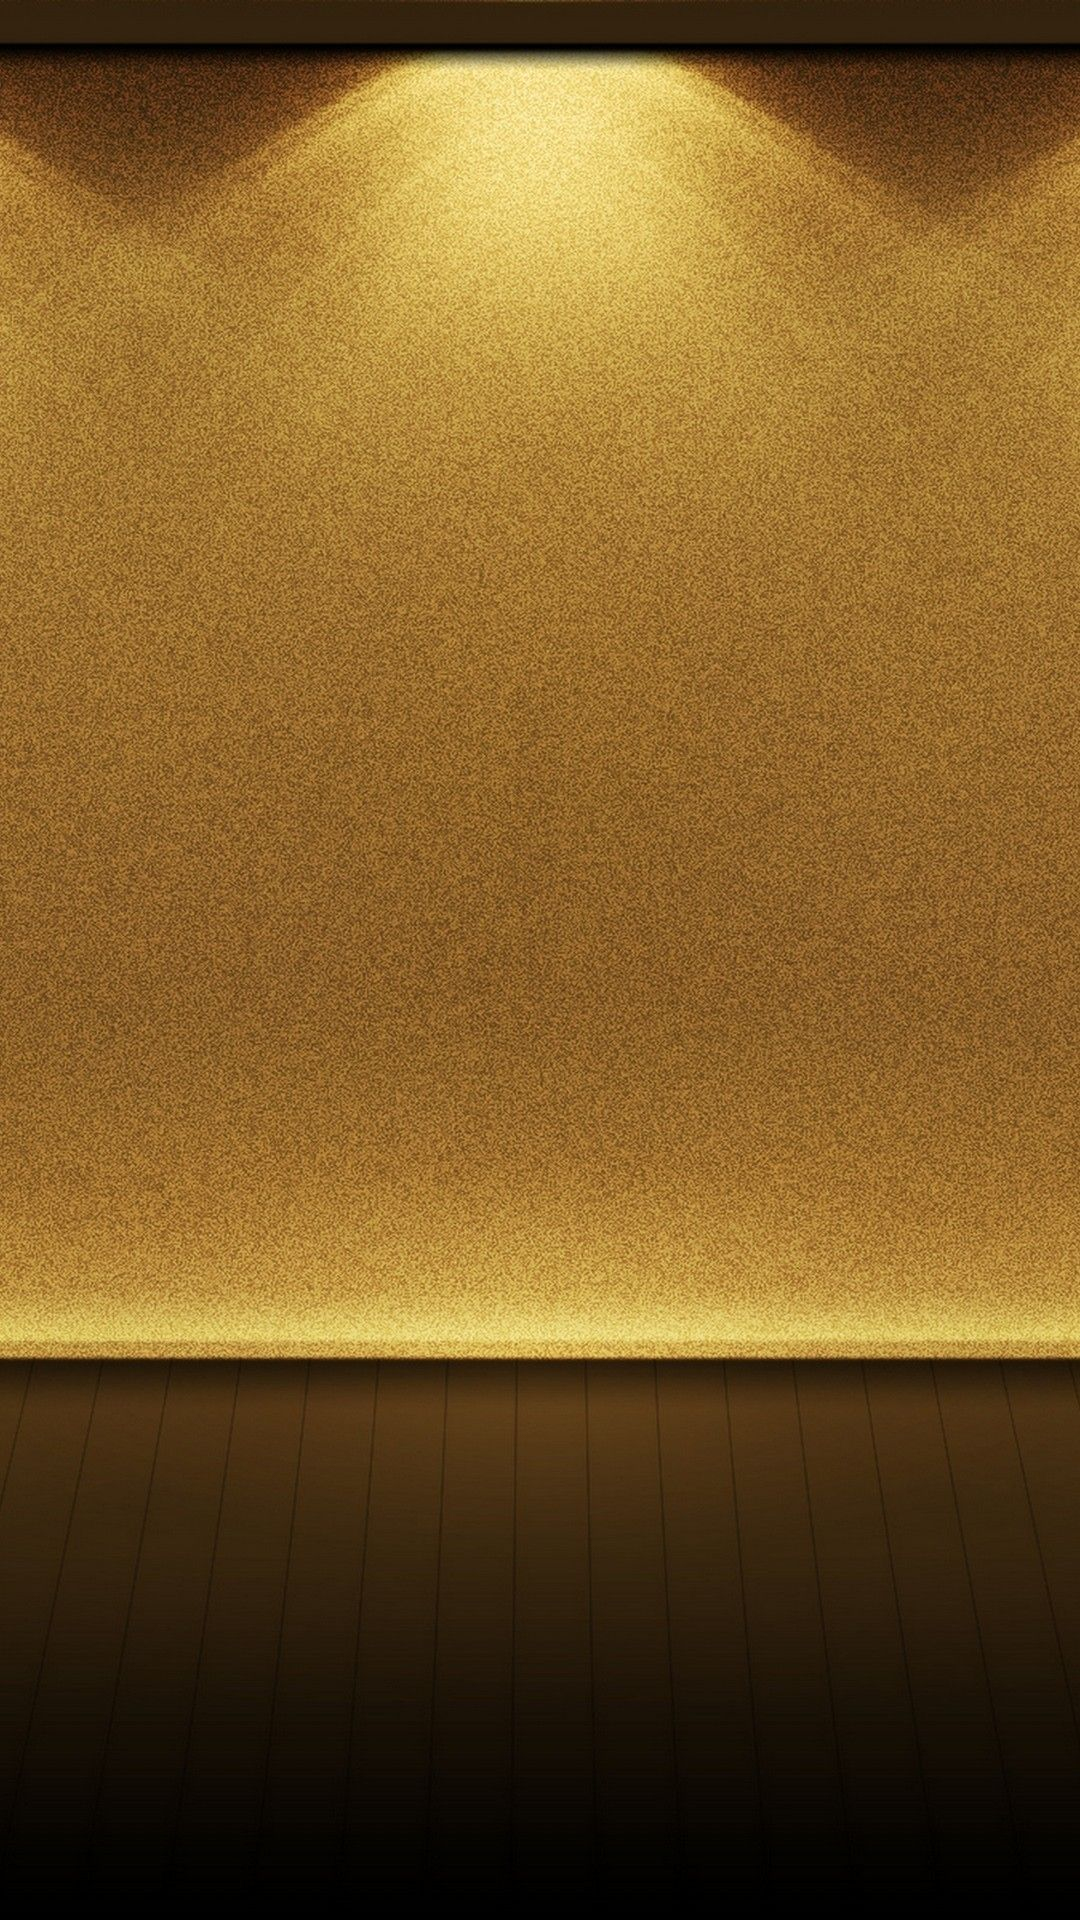 Golden Wallpaper IPhone